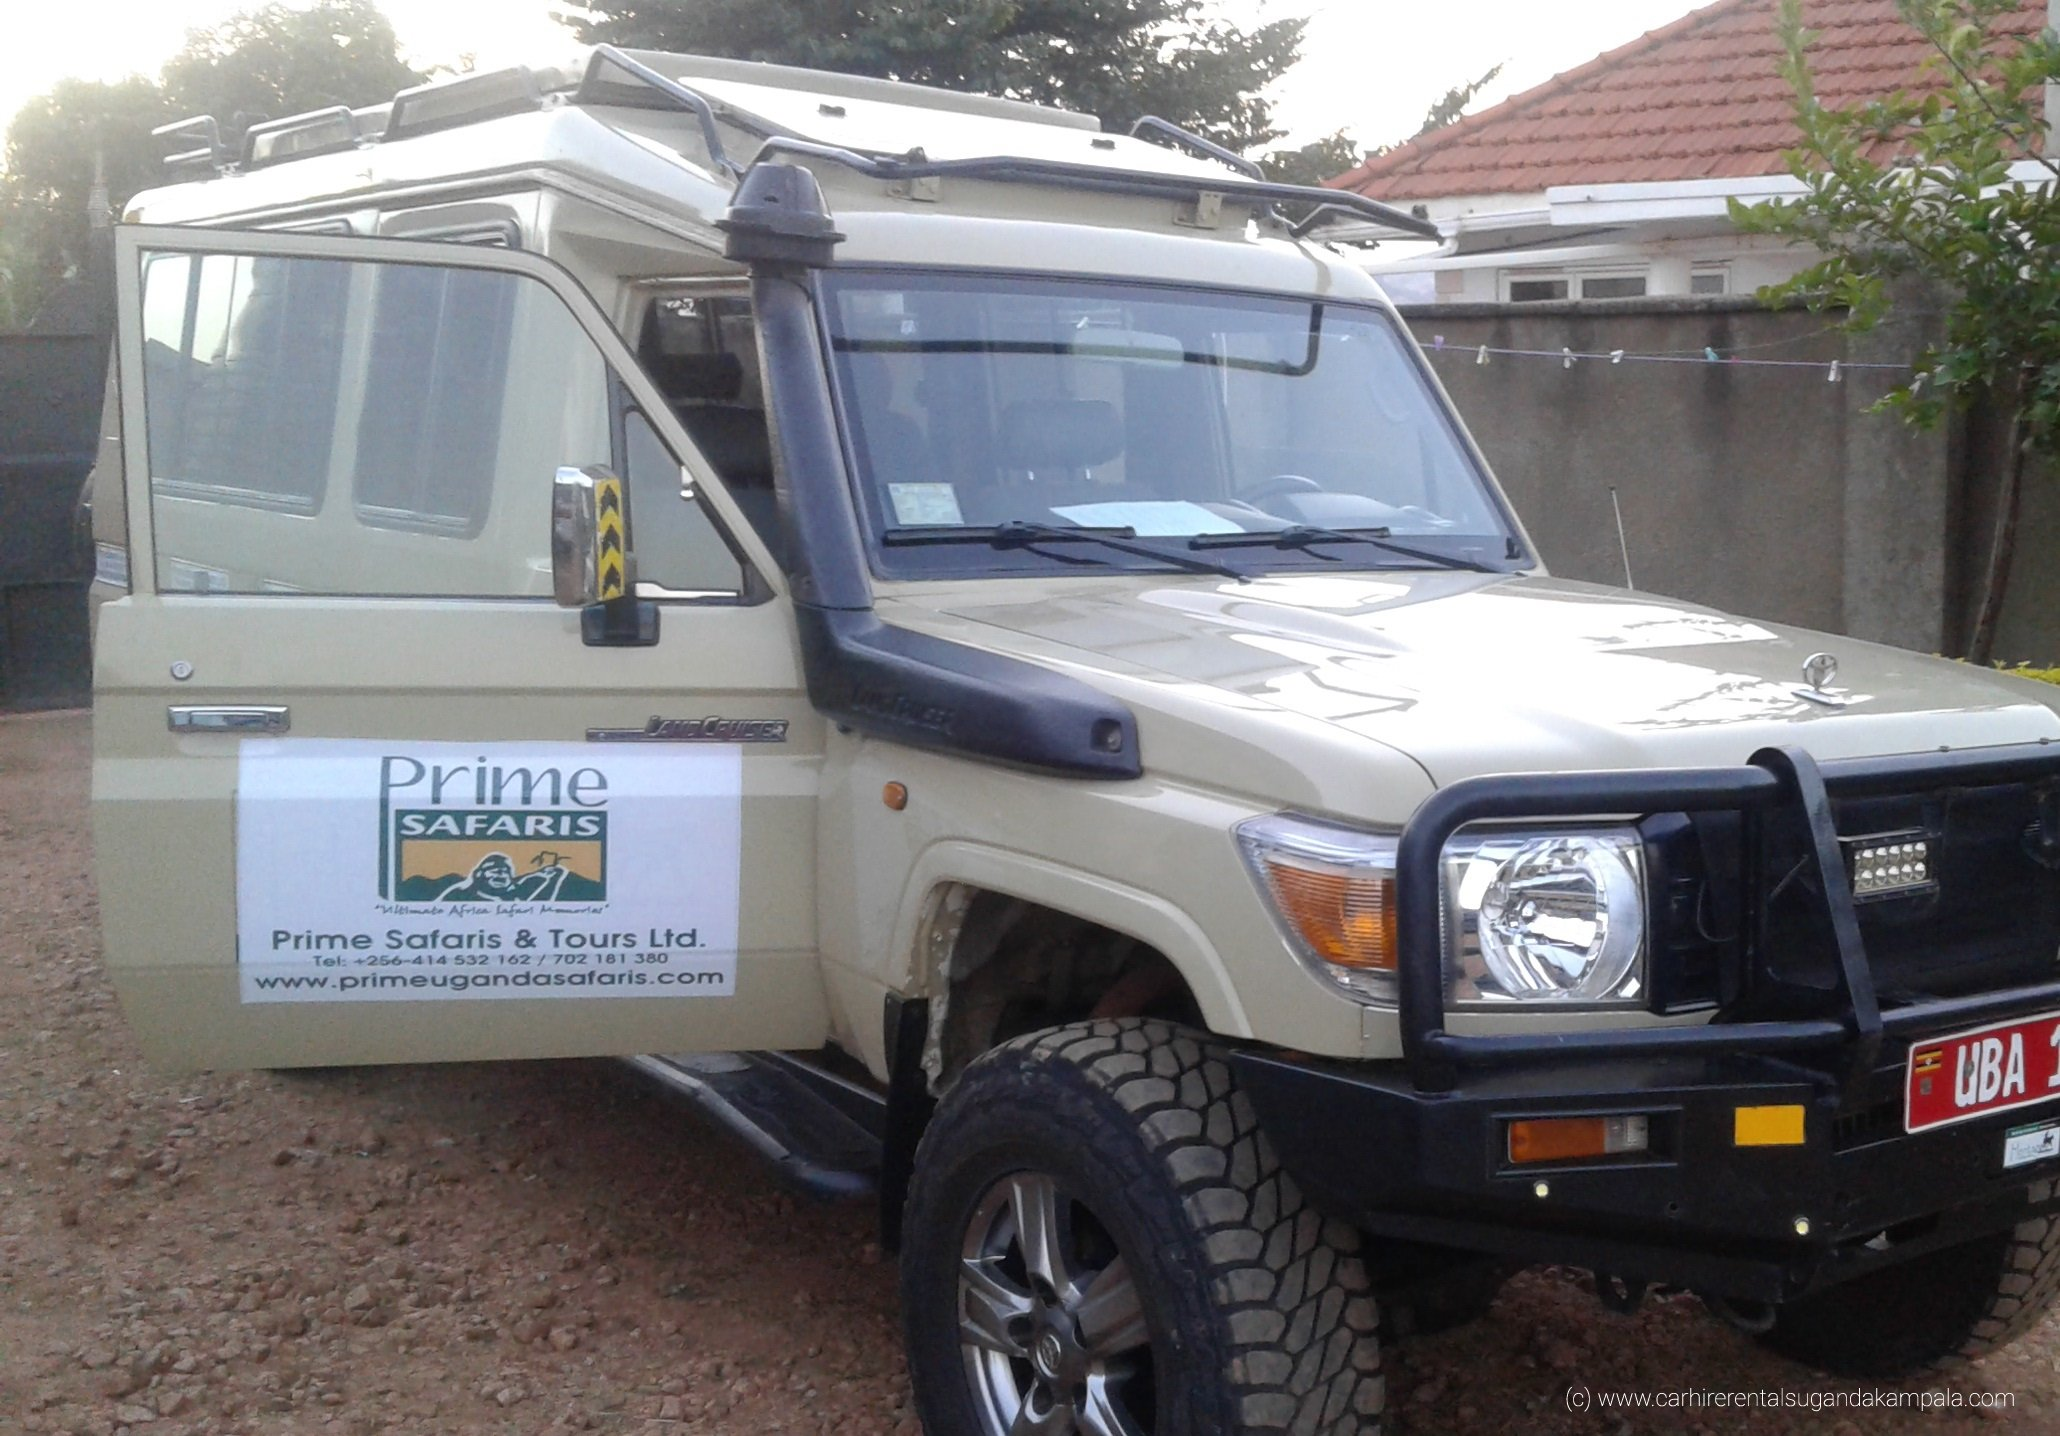 4x4 safari cars for hire in Uganda